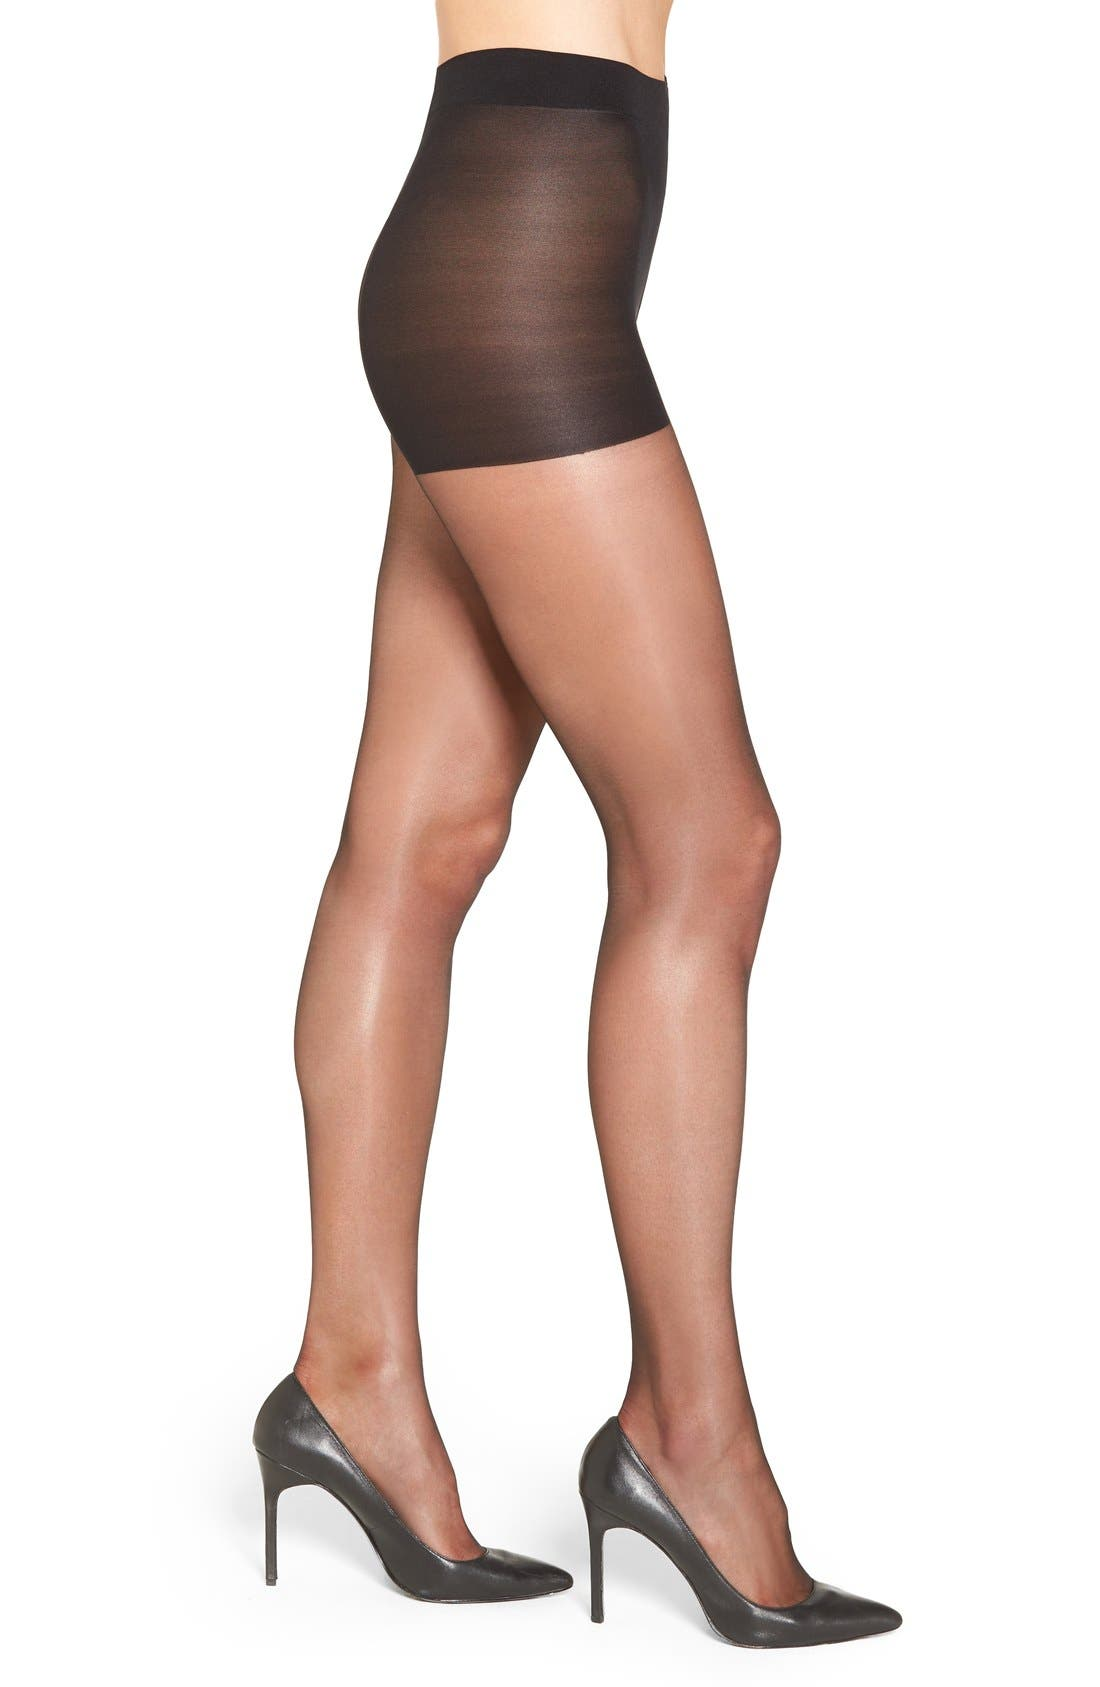 'Gloss' Control Top Pantyhose,                         Main,                         color, BLACK